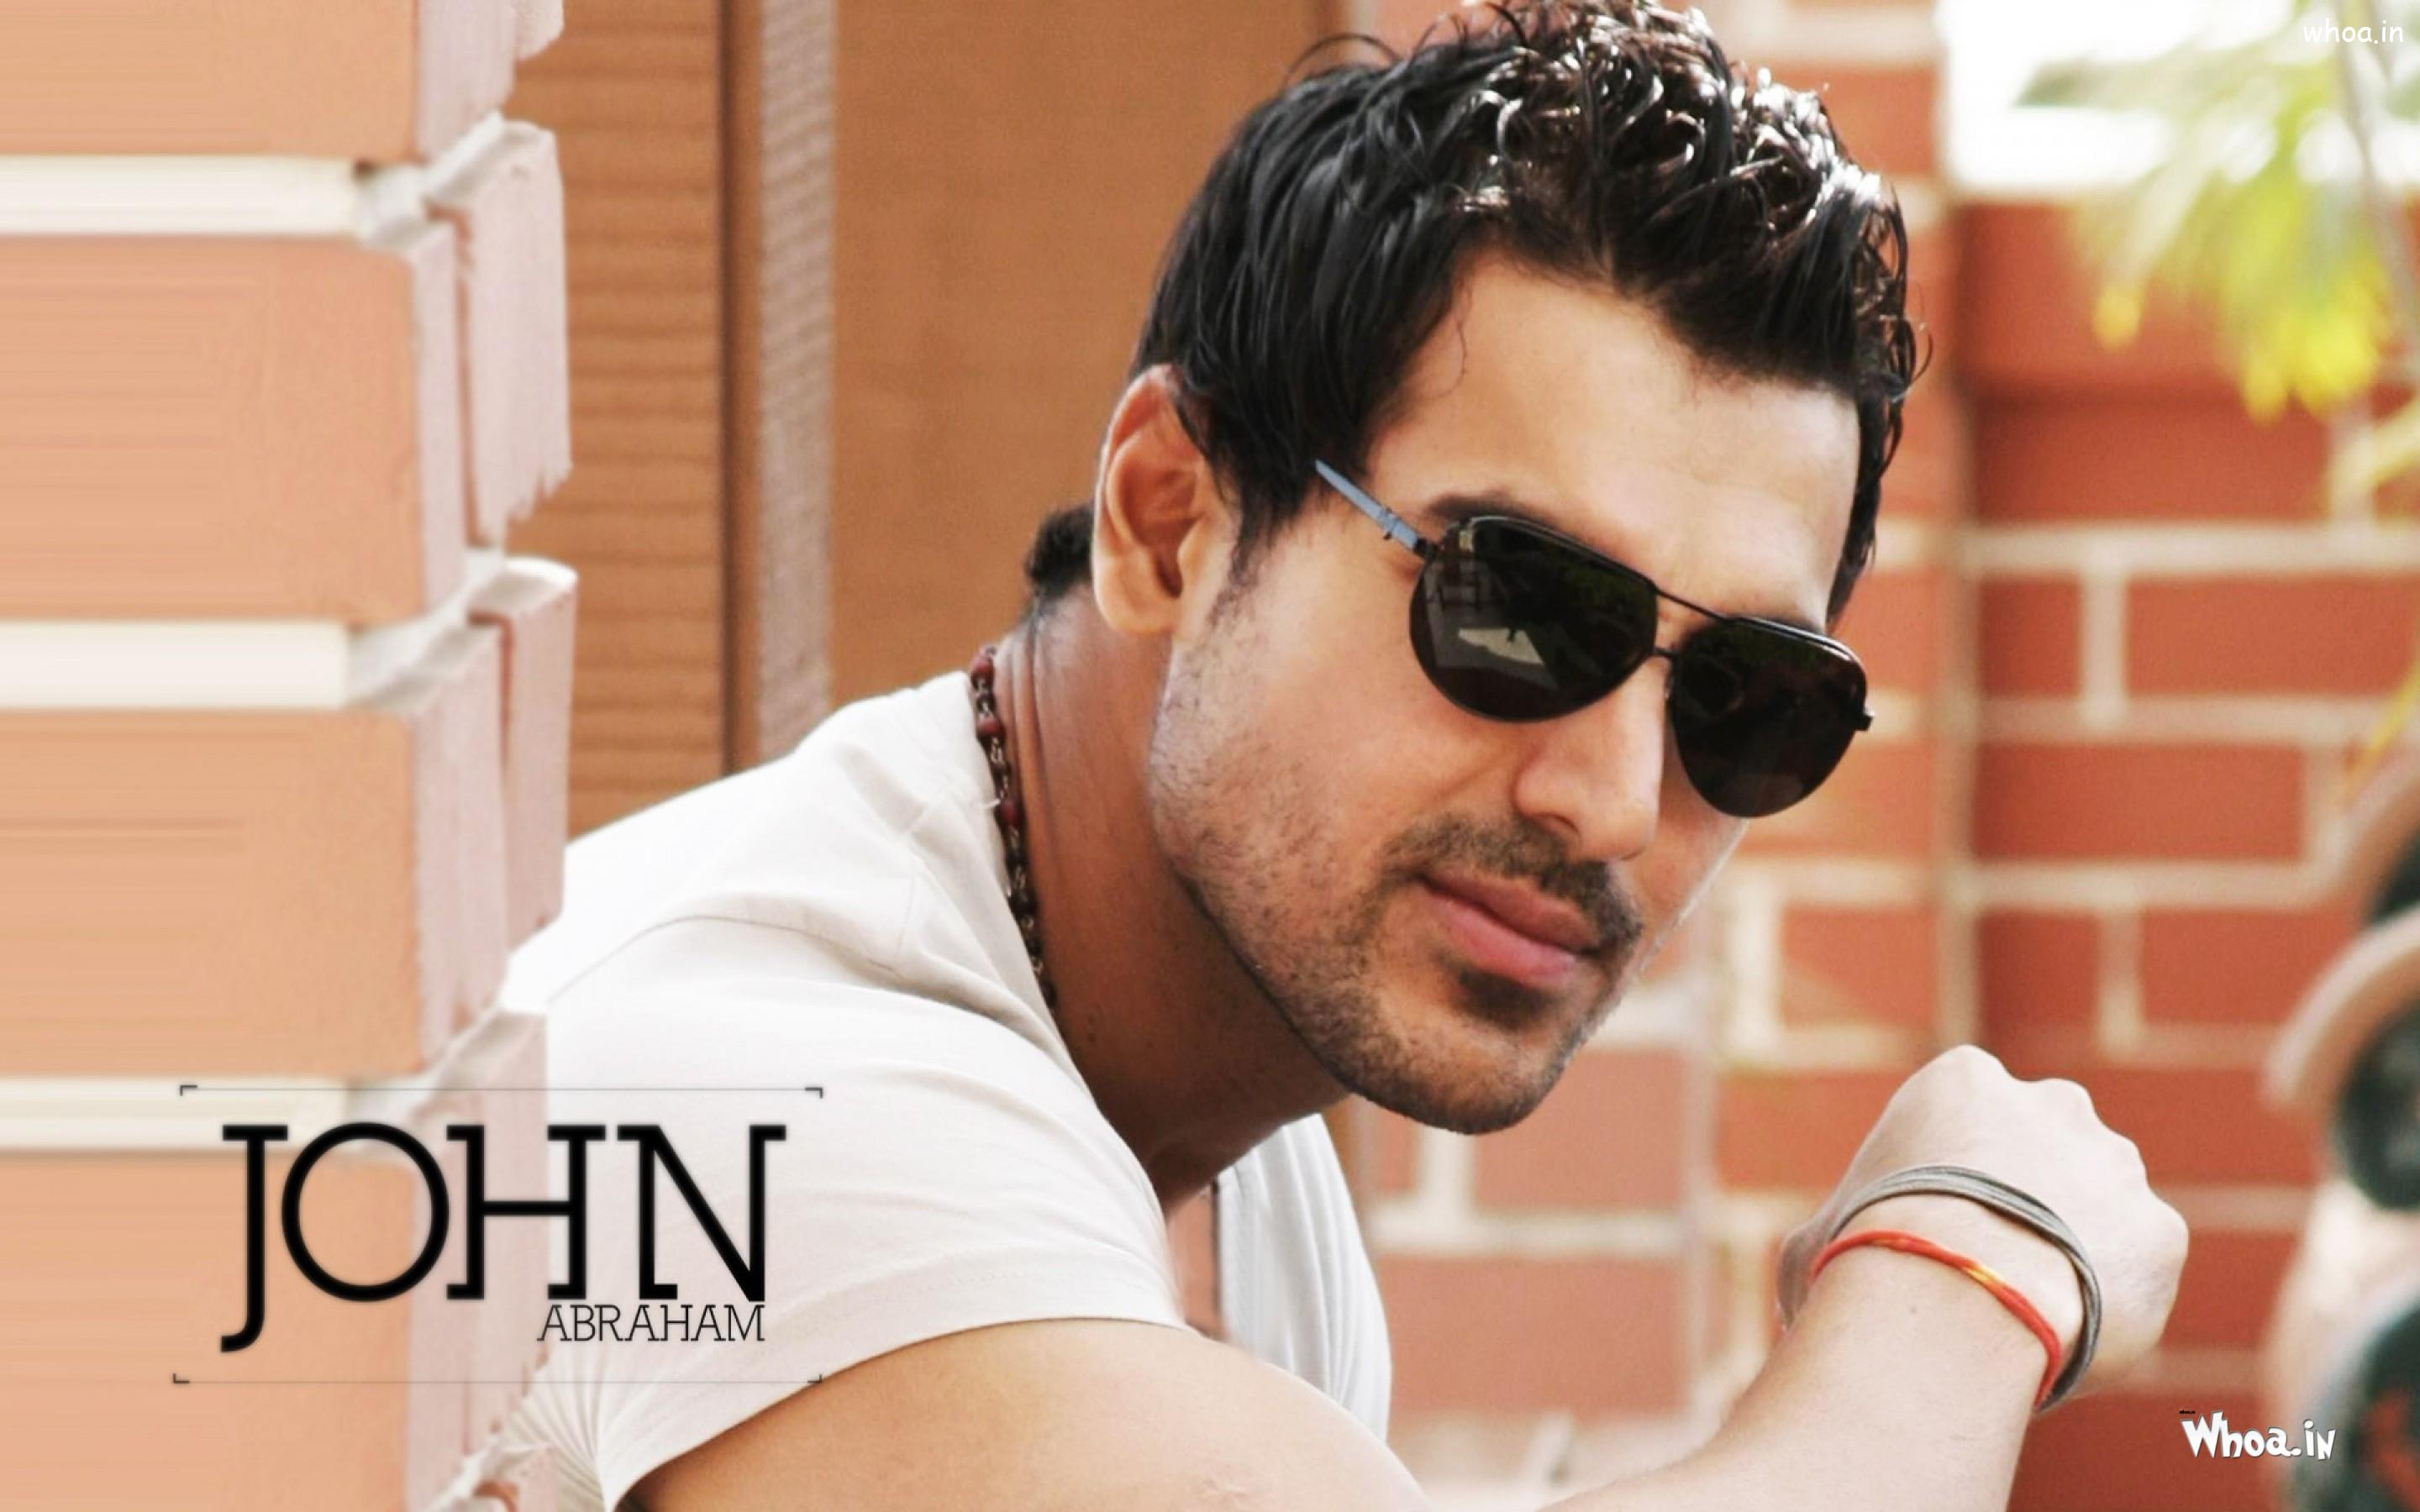 Hd wallpaper john abraham -  John Abraham Stylish Look With Black Sunglass Hd Wallpaper